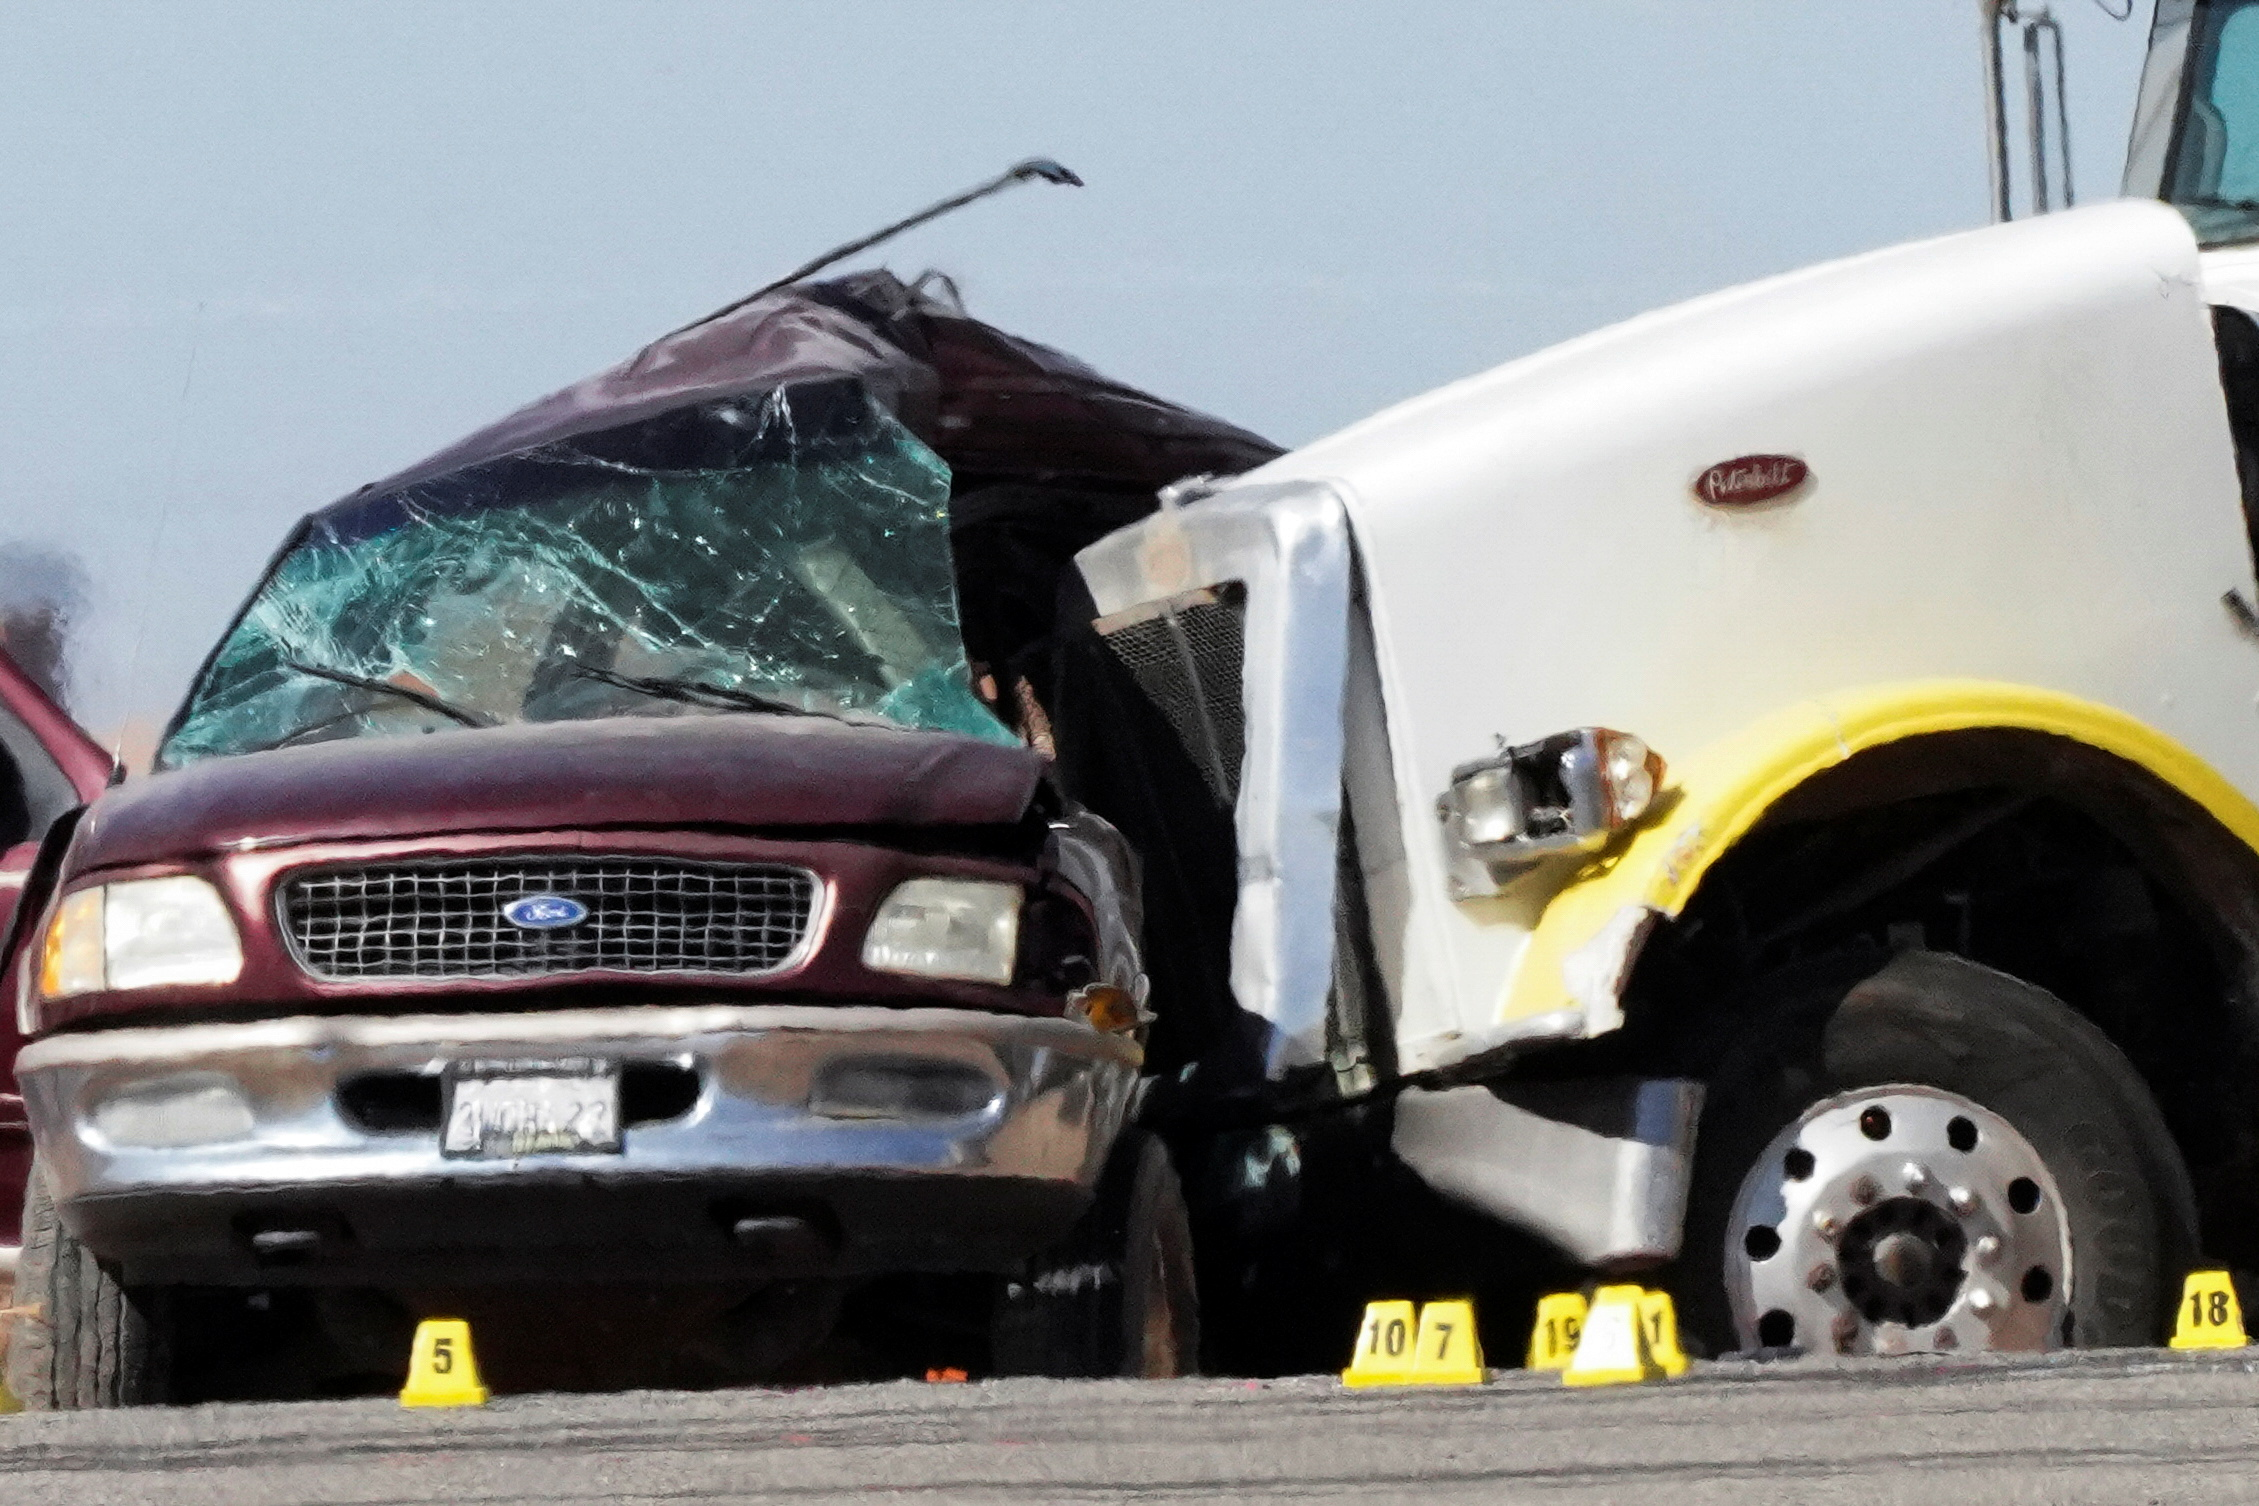 The entire driver's side of the smaller vehicle was caved in, and the passenger side was flung...